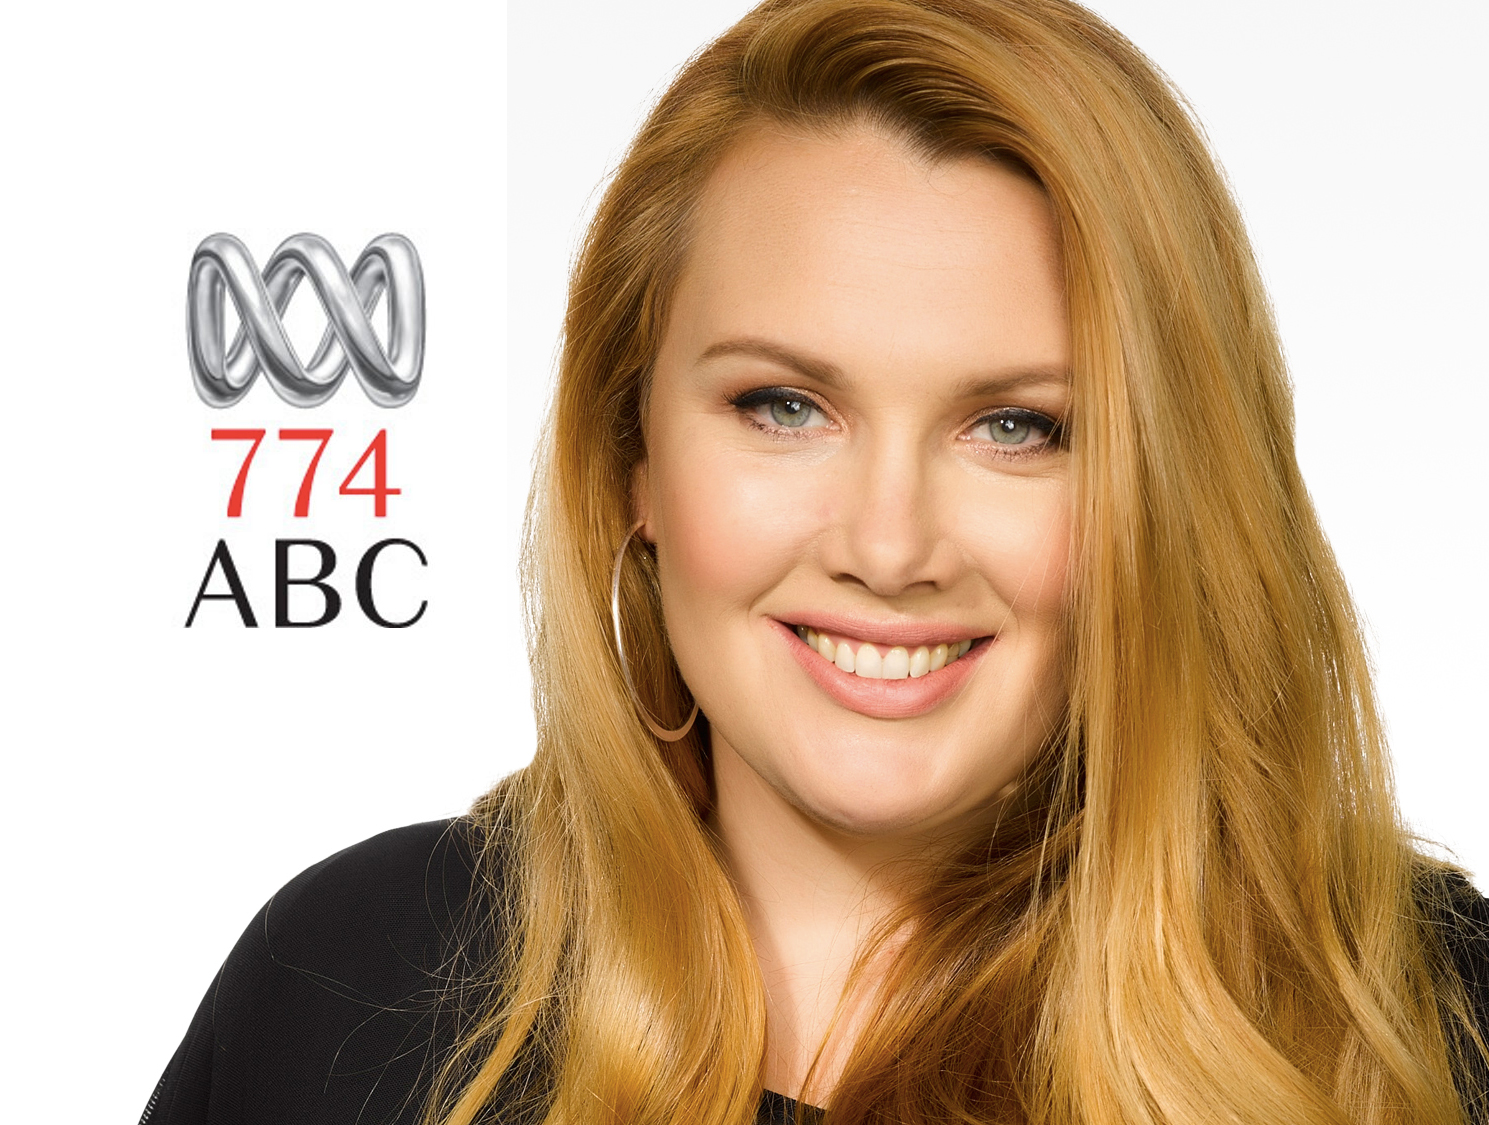 Clare Bowditch Abc Radio Melbourne 774